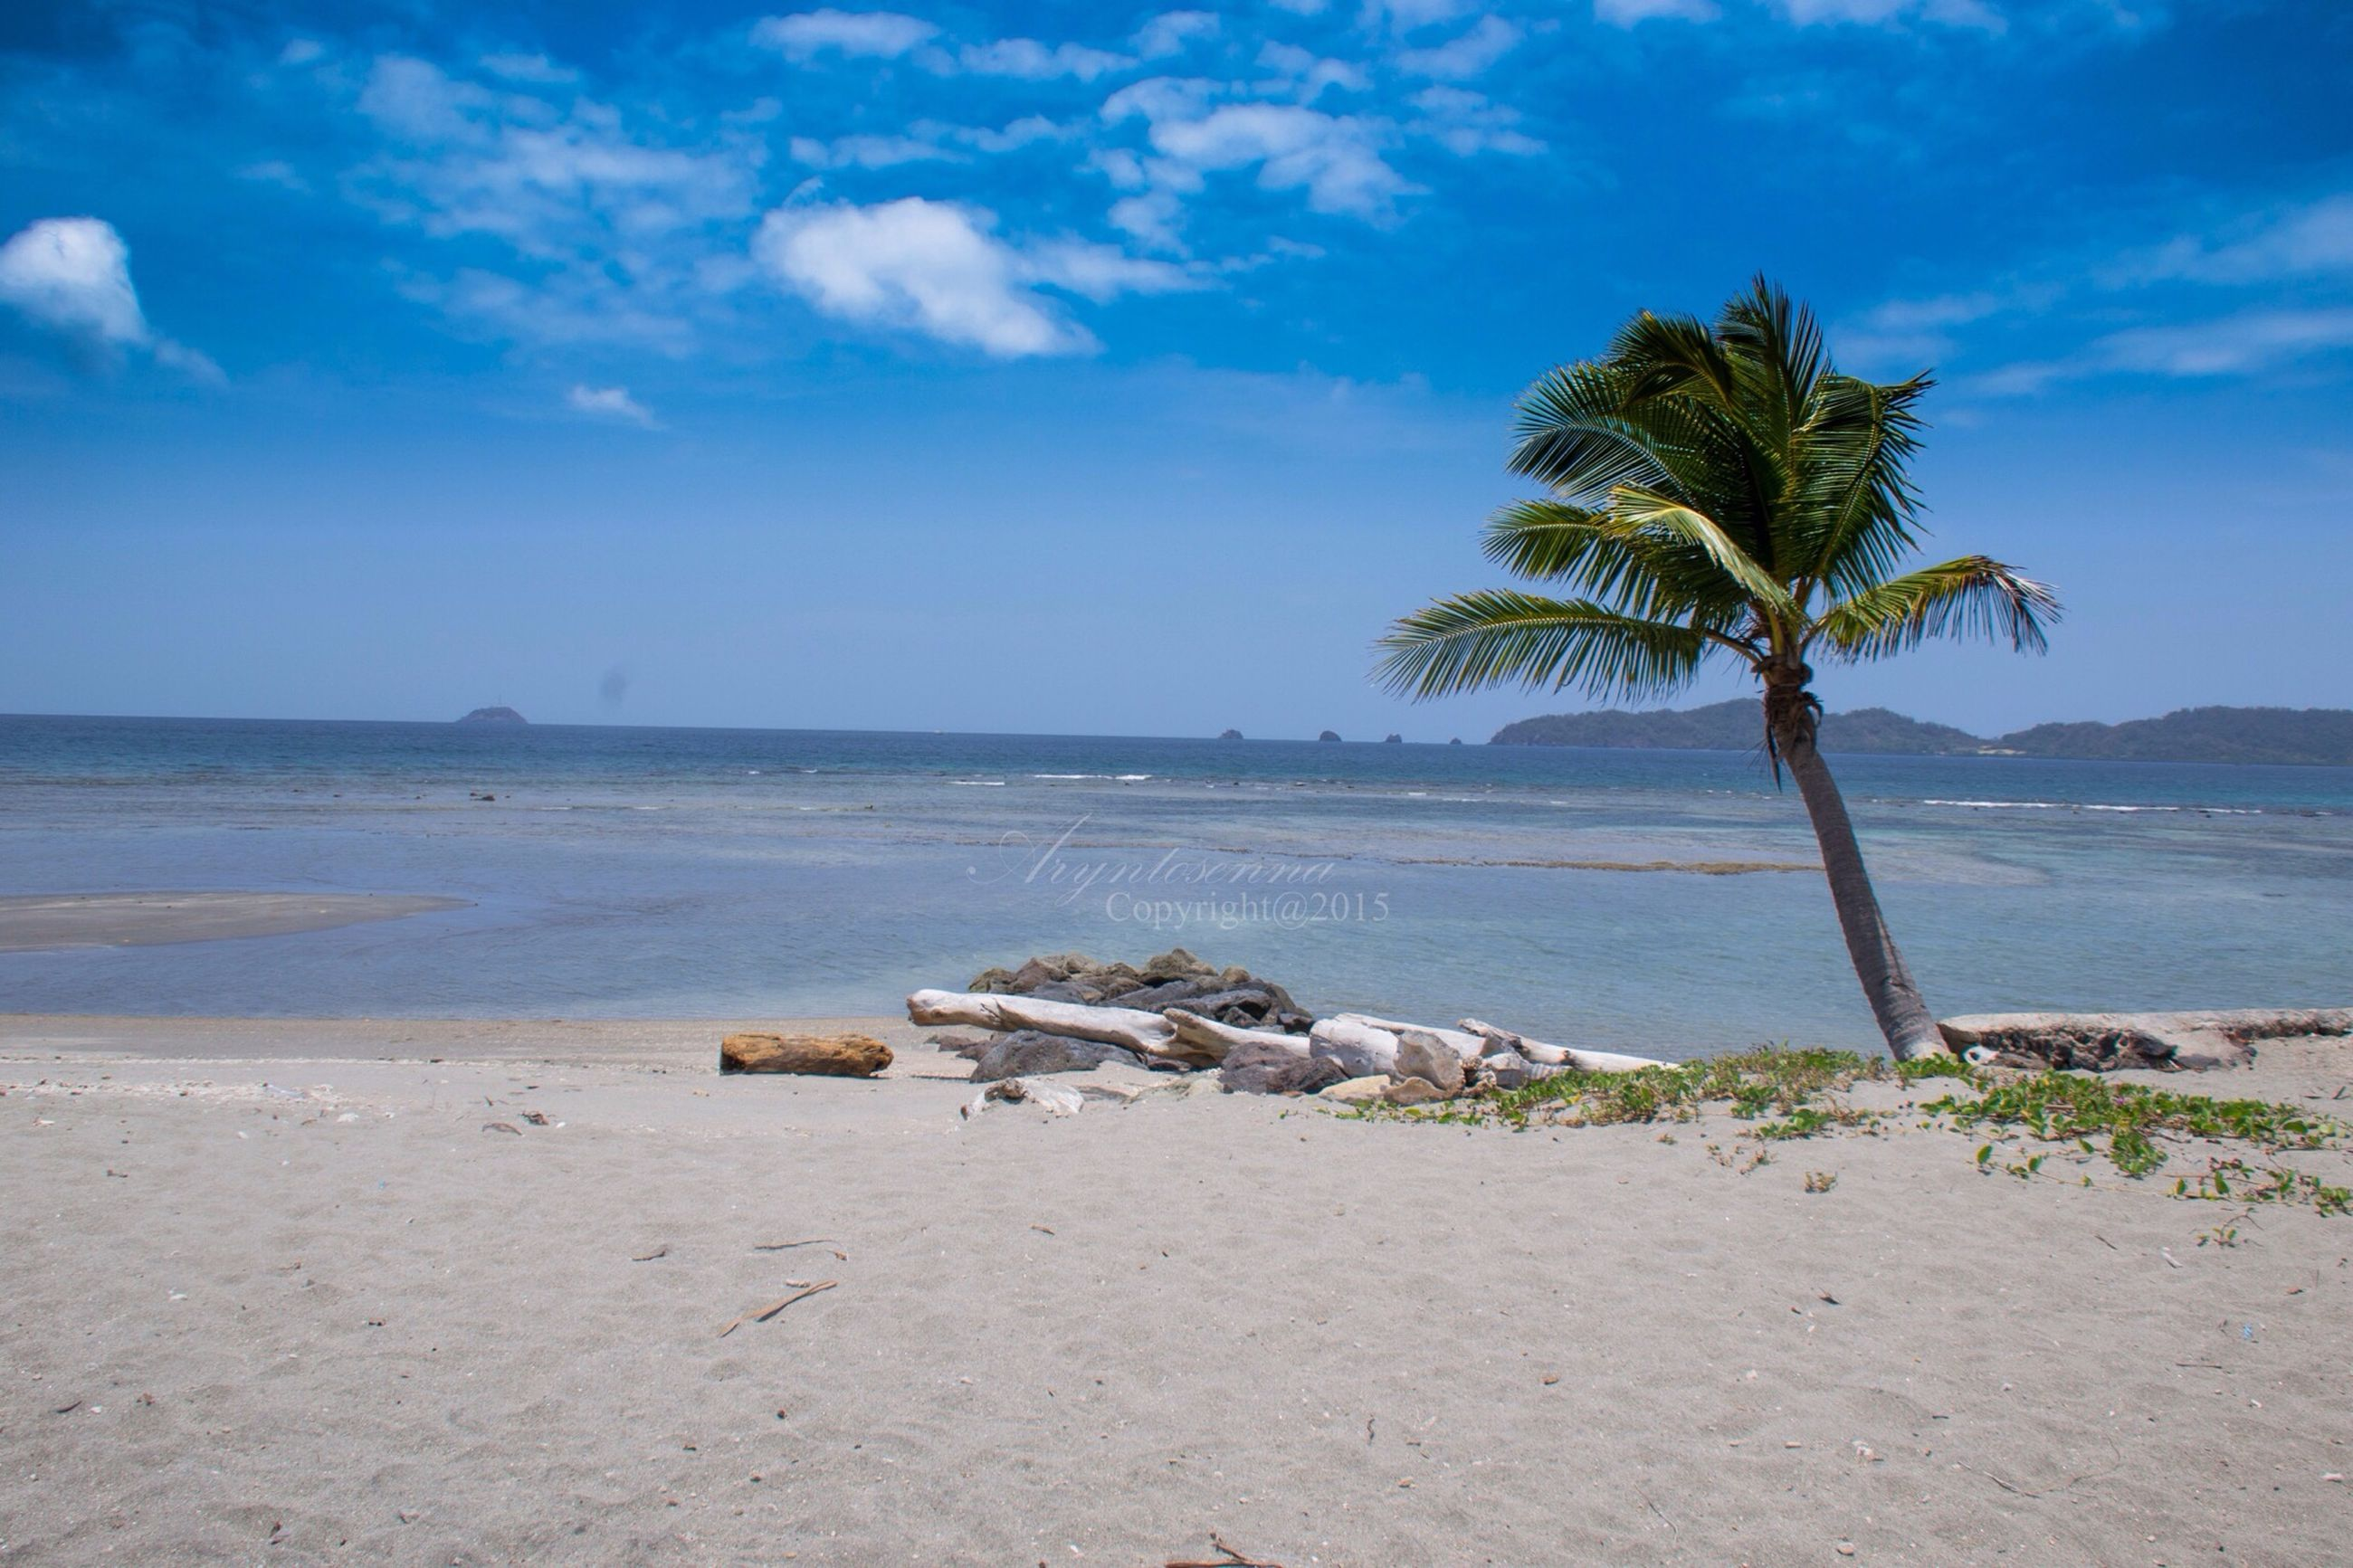 sea, water, sky, beach, tree, tranquility, tranquil scene, palm tree, shore, sand, scenics, horizon over water, nature, beauty in nature, blue, cloud, day, cloud - sky, idyllic, outdoors